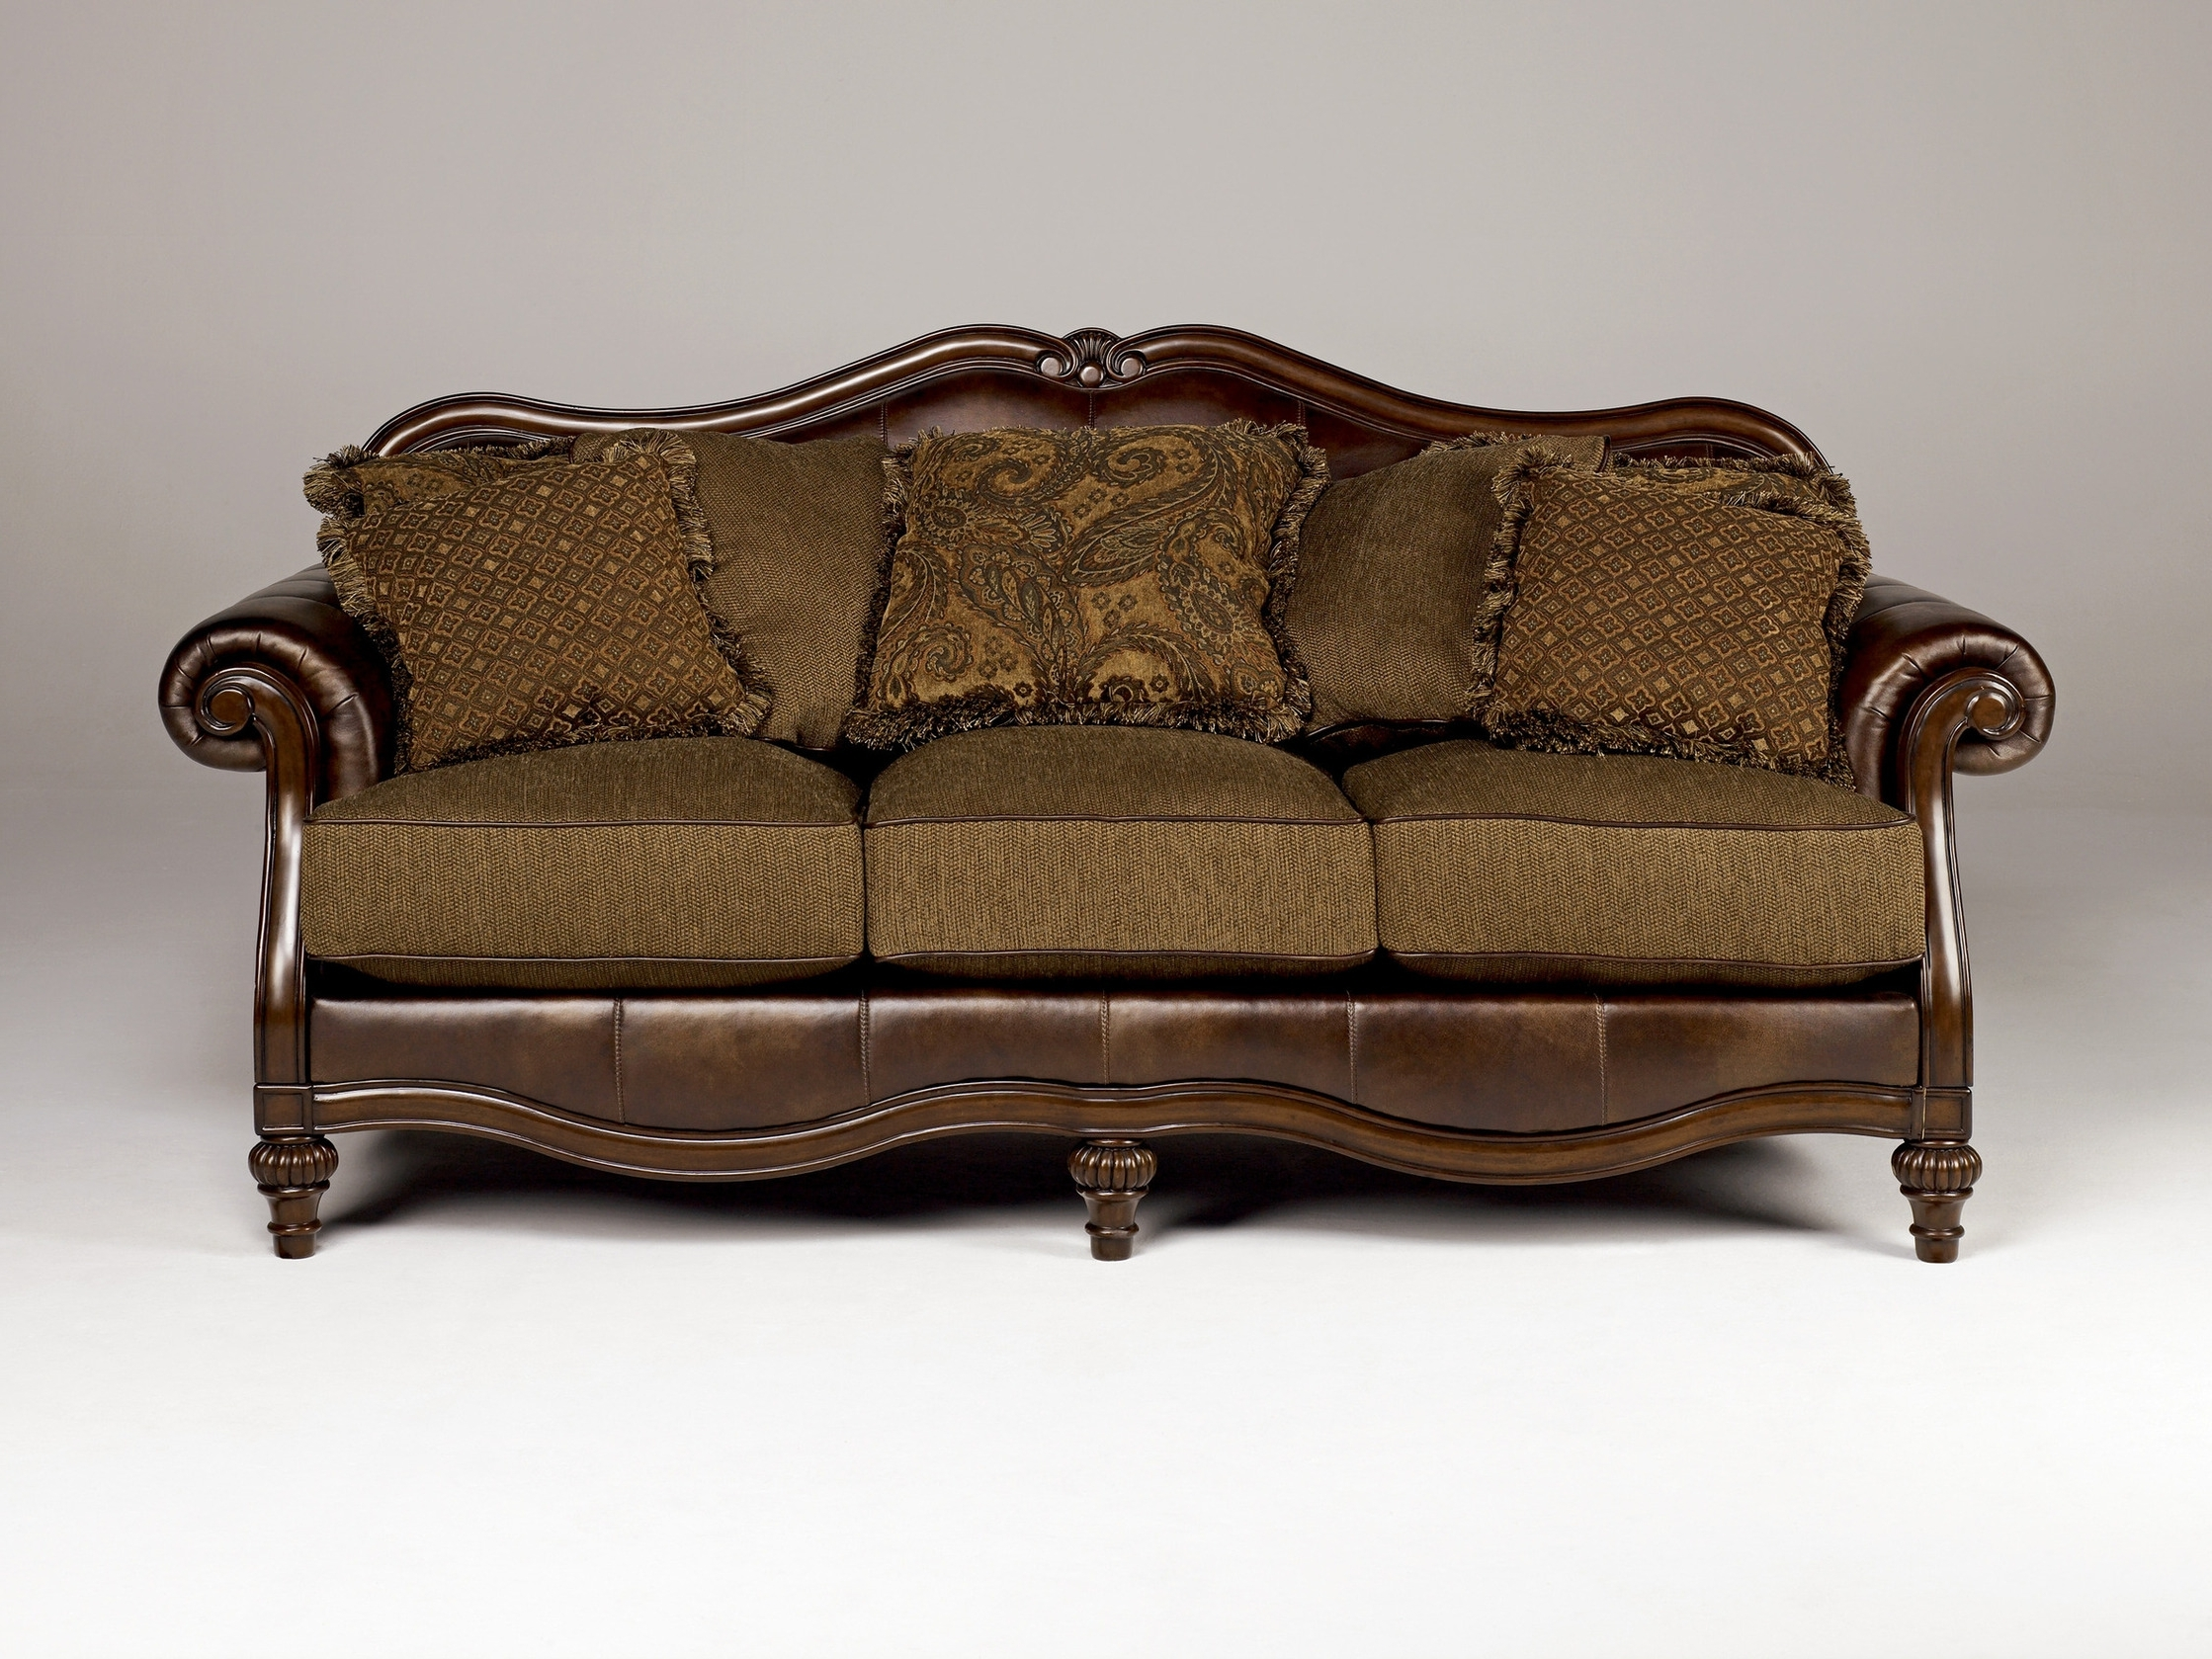 2017 Chintz Sofas And Chairs Inside Truffle Traditional Sofa Set Old World Couch Wood Trim Cozy Fabric (View 10 of 15)